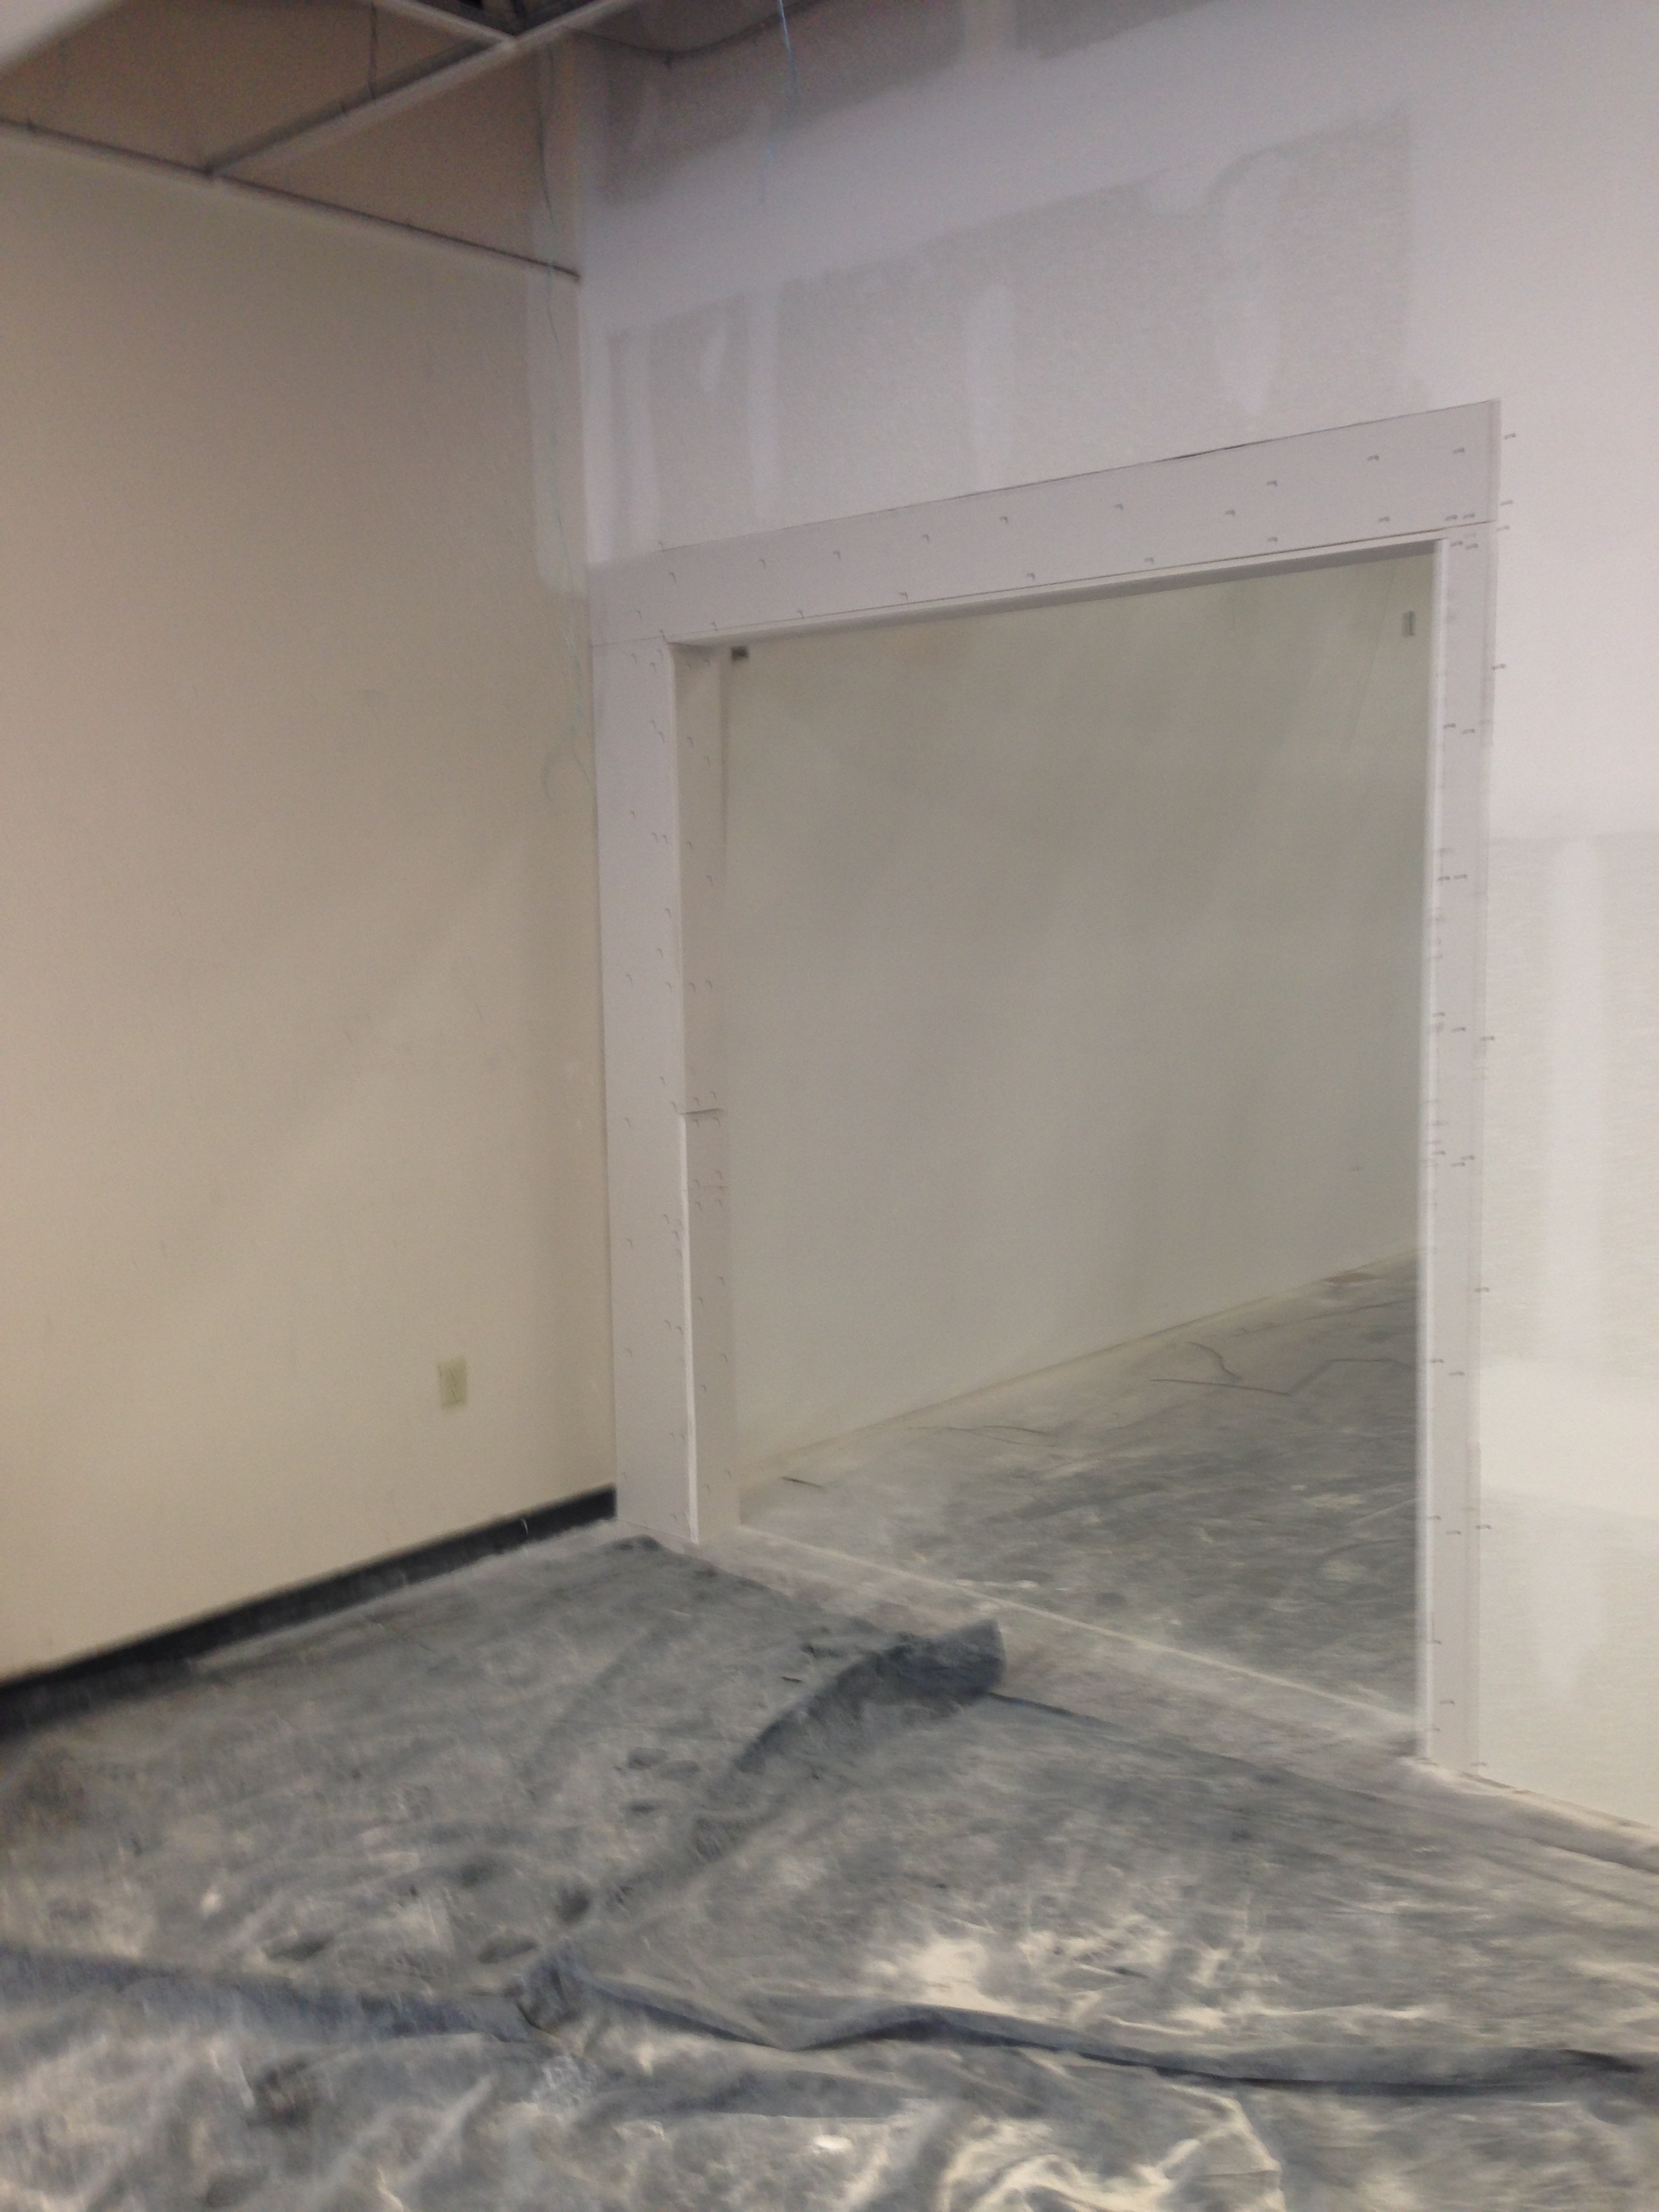 New doorway from training room to lounge